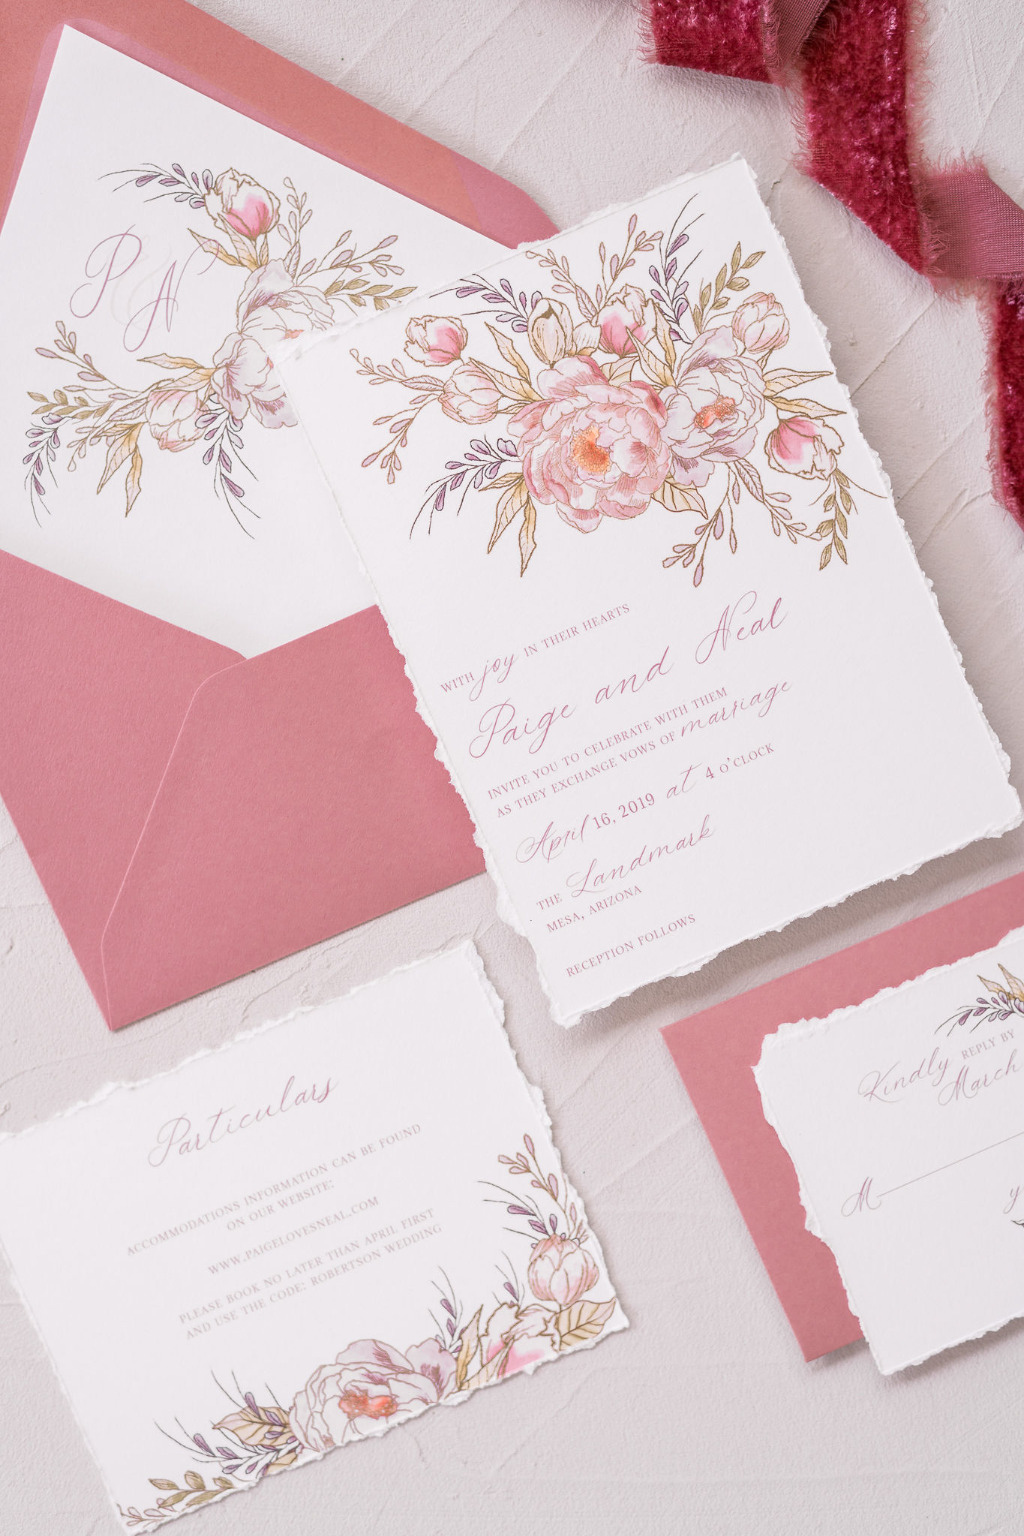 Our most popular wedding invitation! Our Paige Wedding invitation suite features delicate line drawn florals and watercolor on an ivory